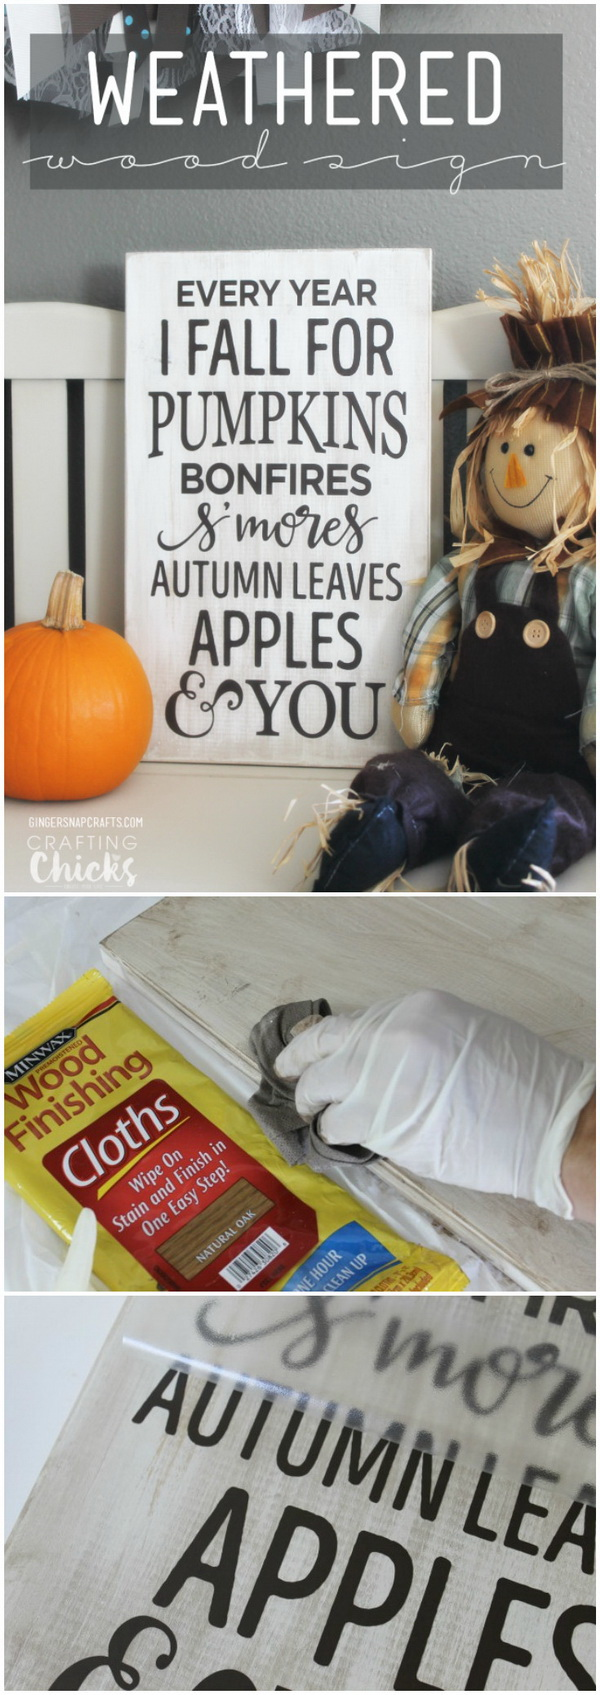 DIY Weathered Wood Sign For Fall. Make this cute & easy fall sign for your home with several steps!